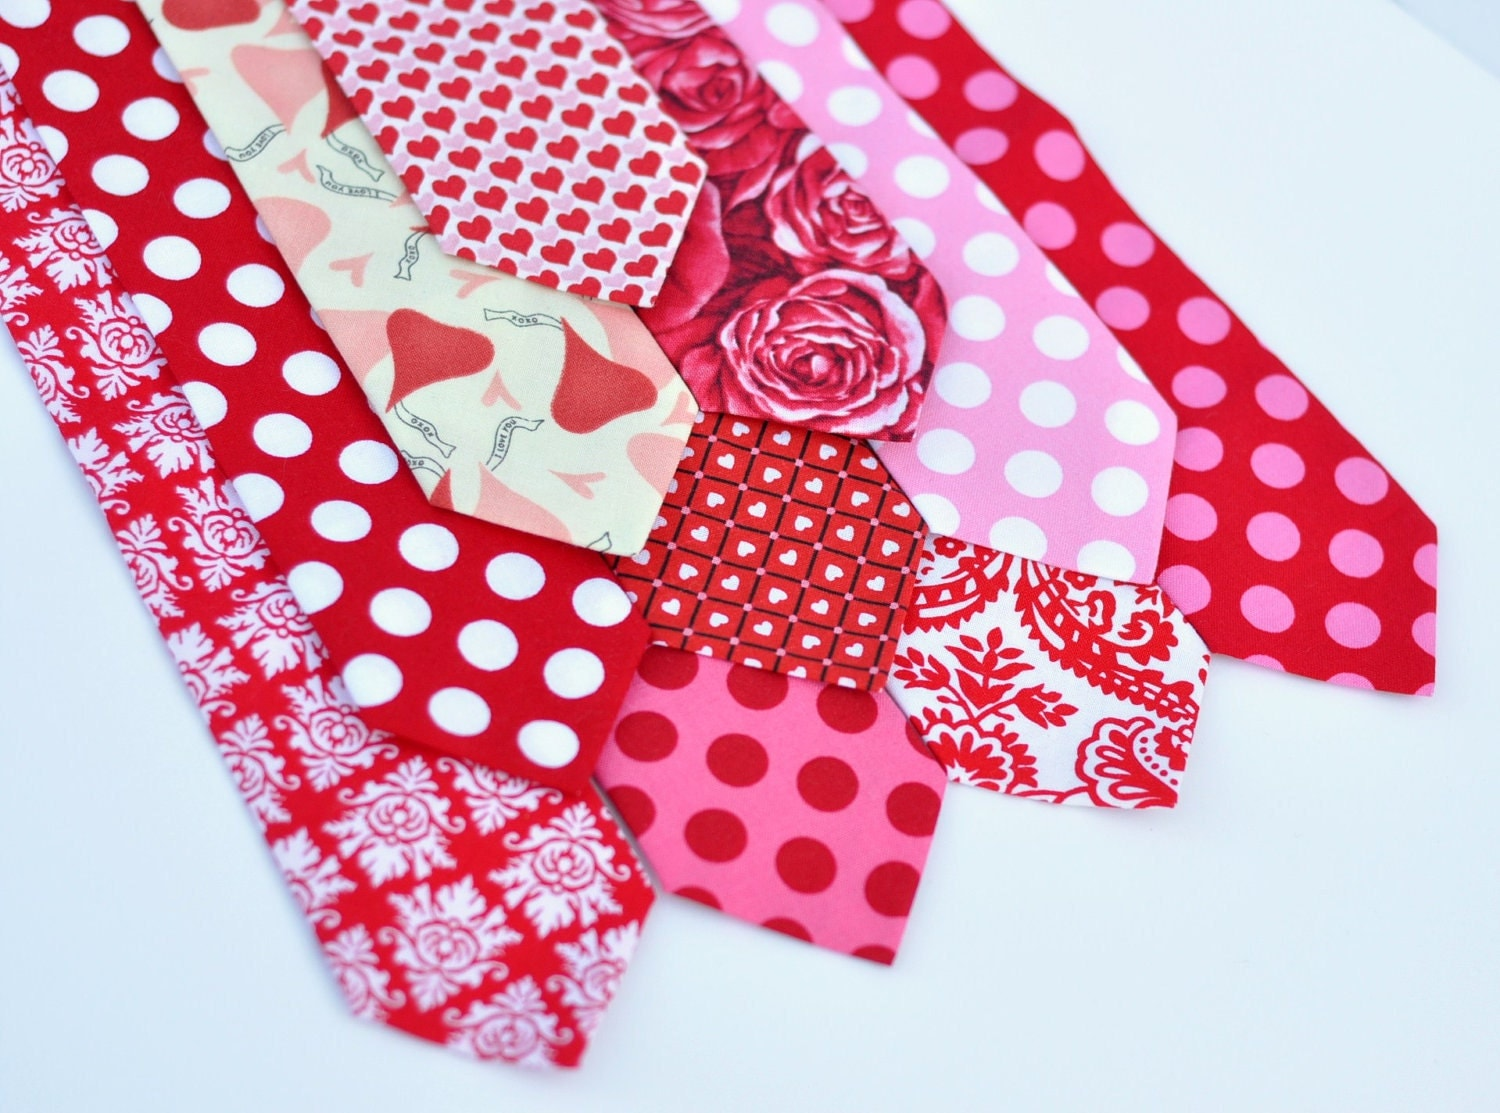 Childrens Valentine Necktie - Mens Ties Boys Neckties - Pink and Red Hearts